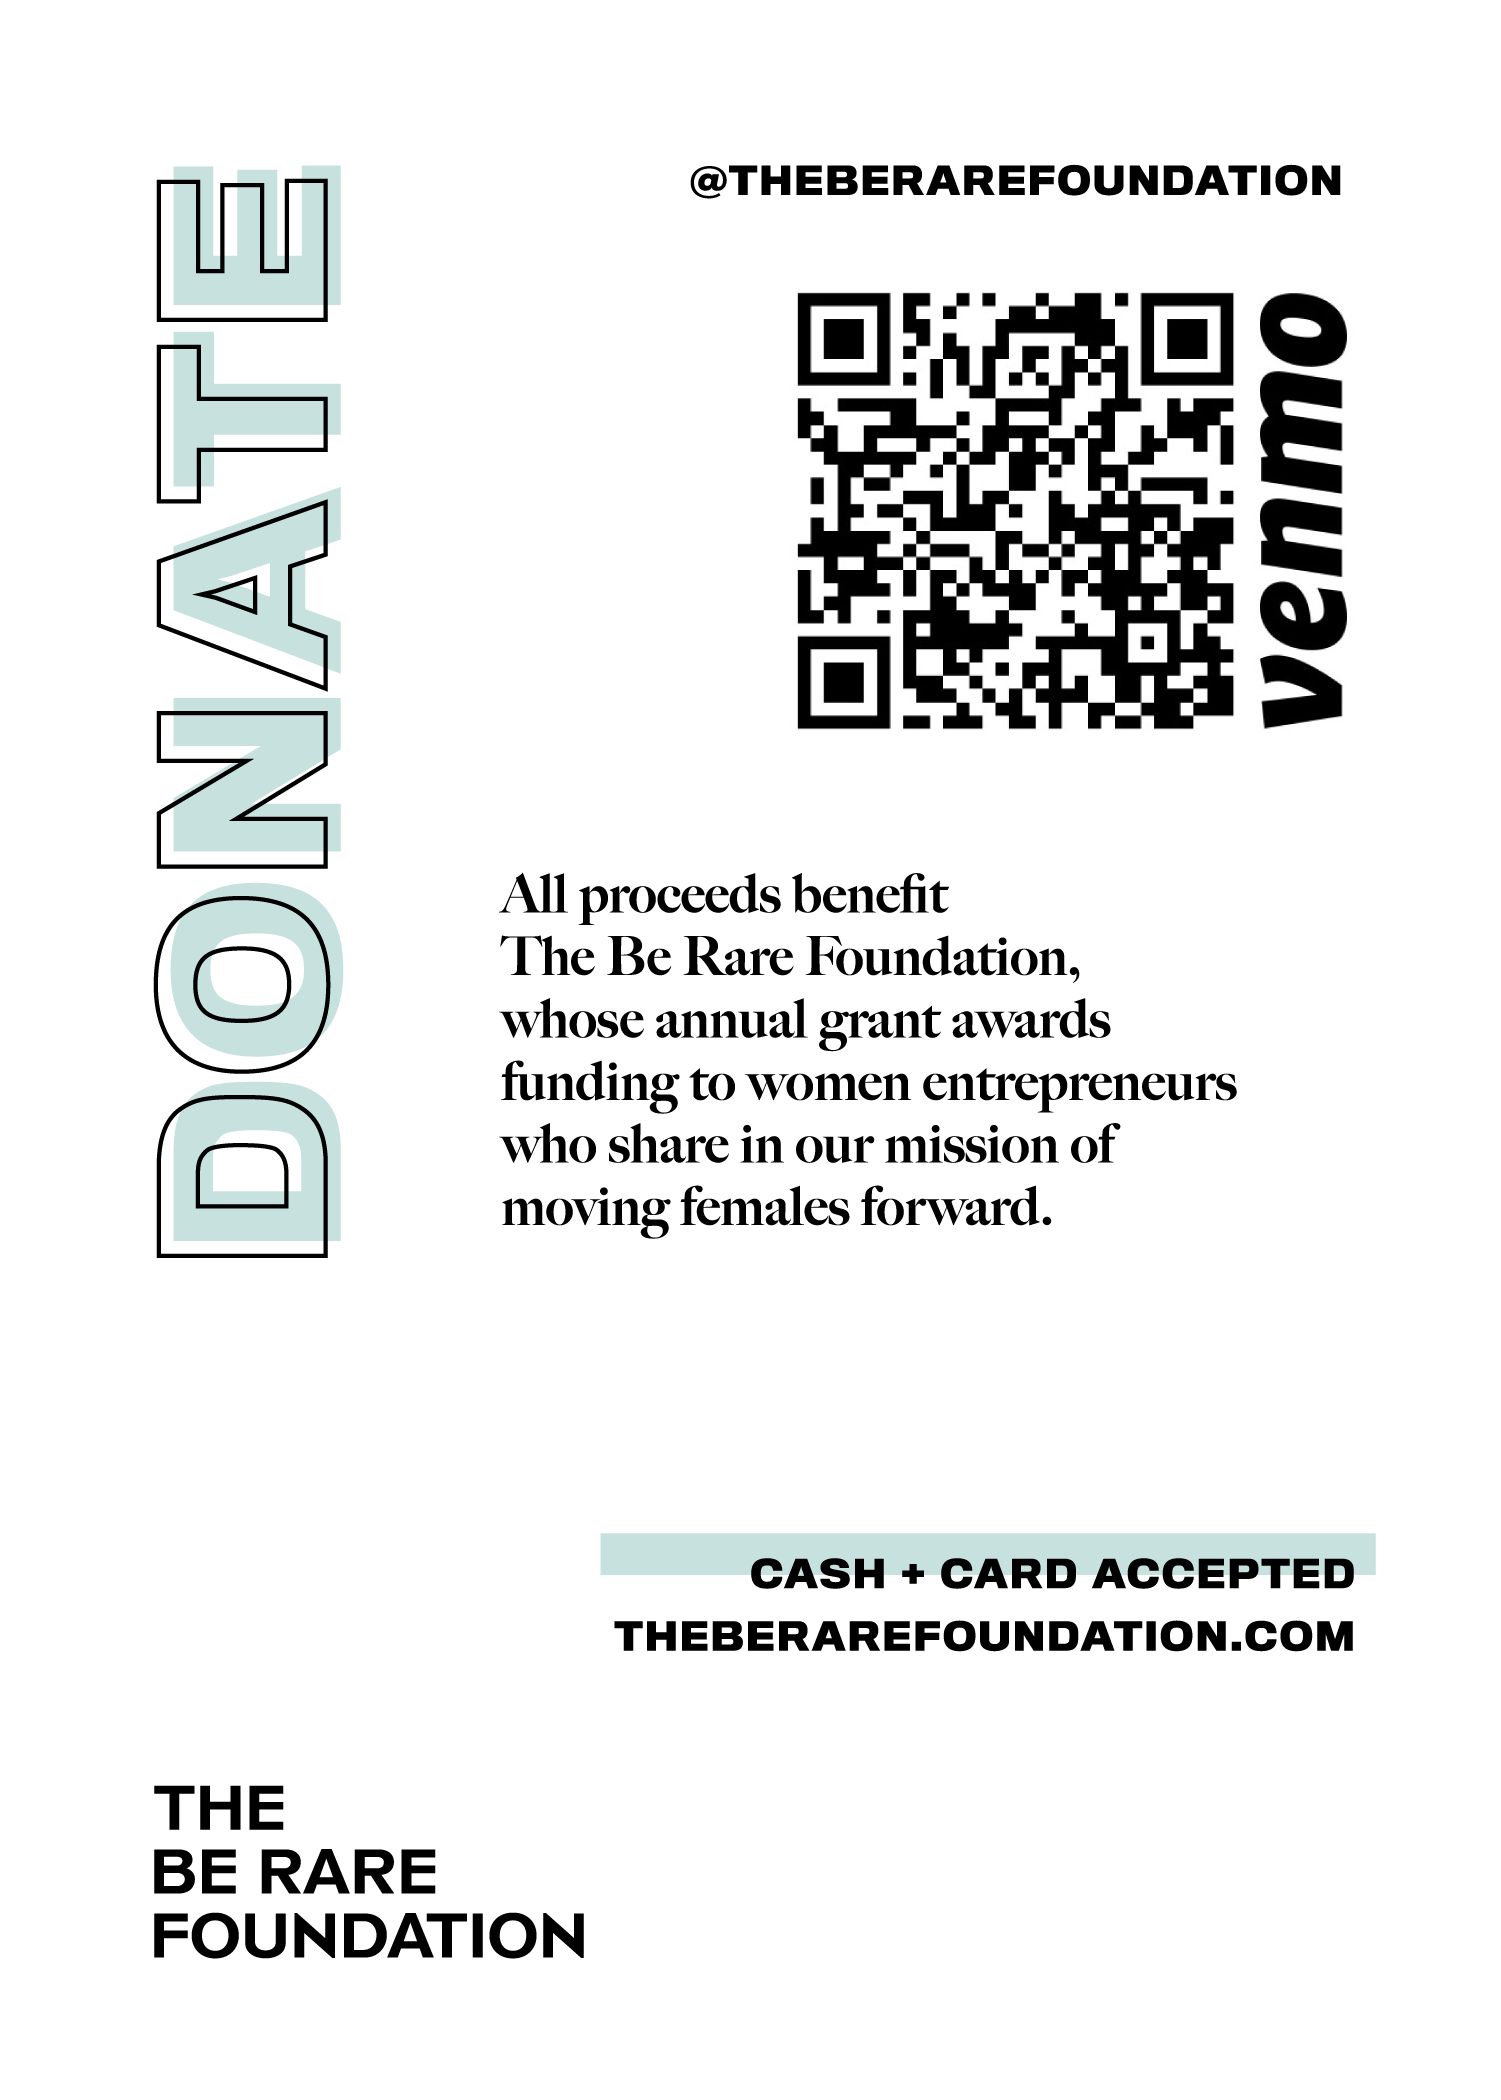 Signs_DONATIONS - 5 x 7.png